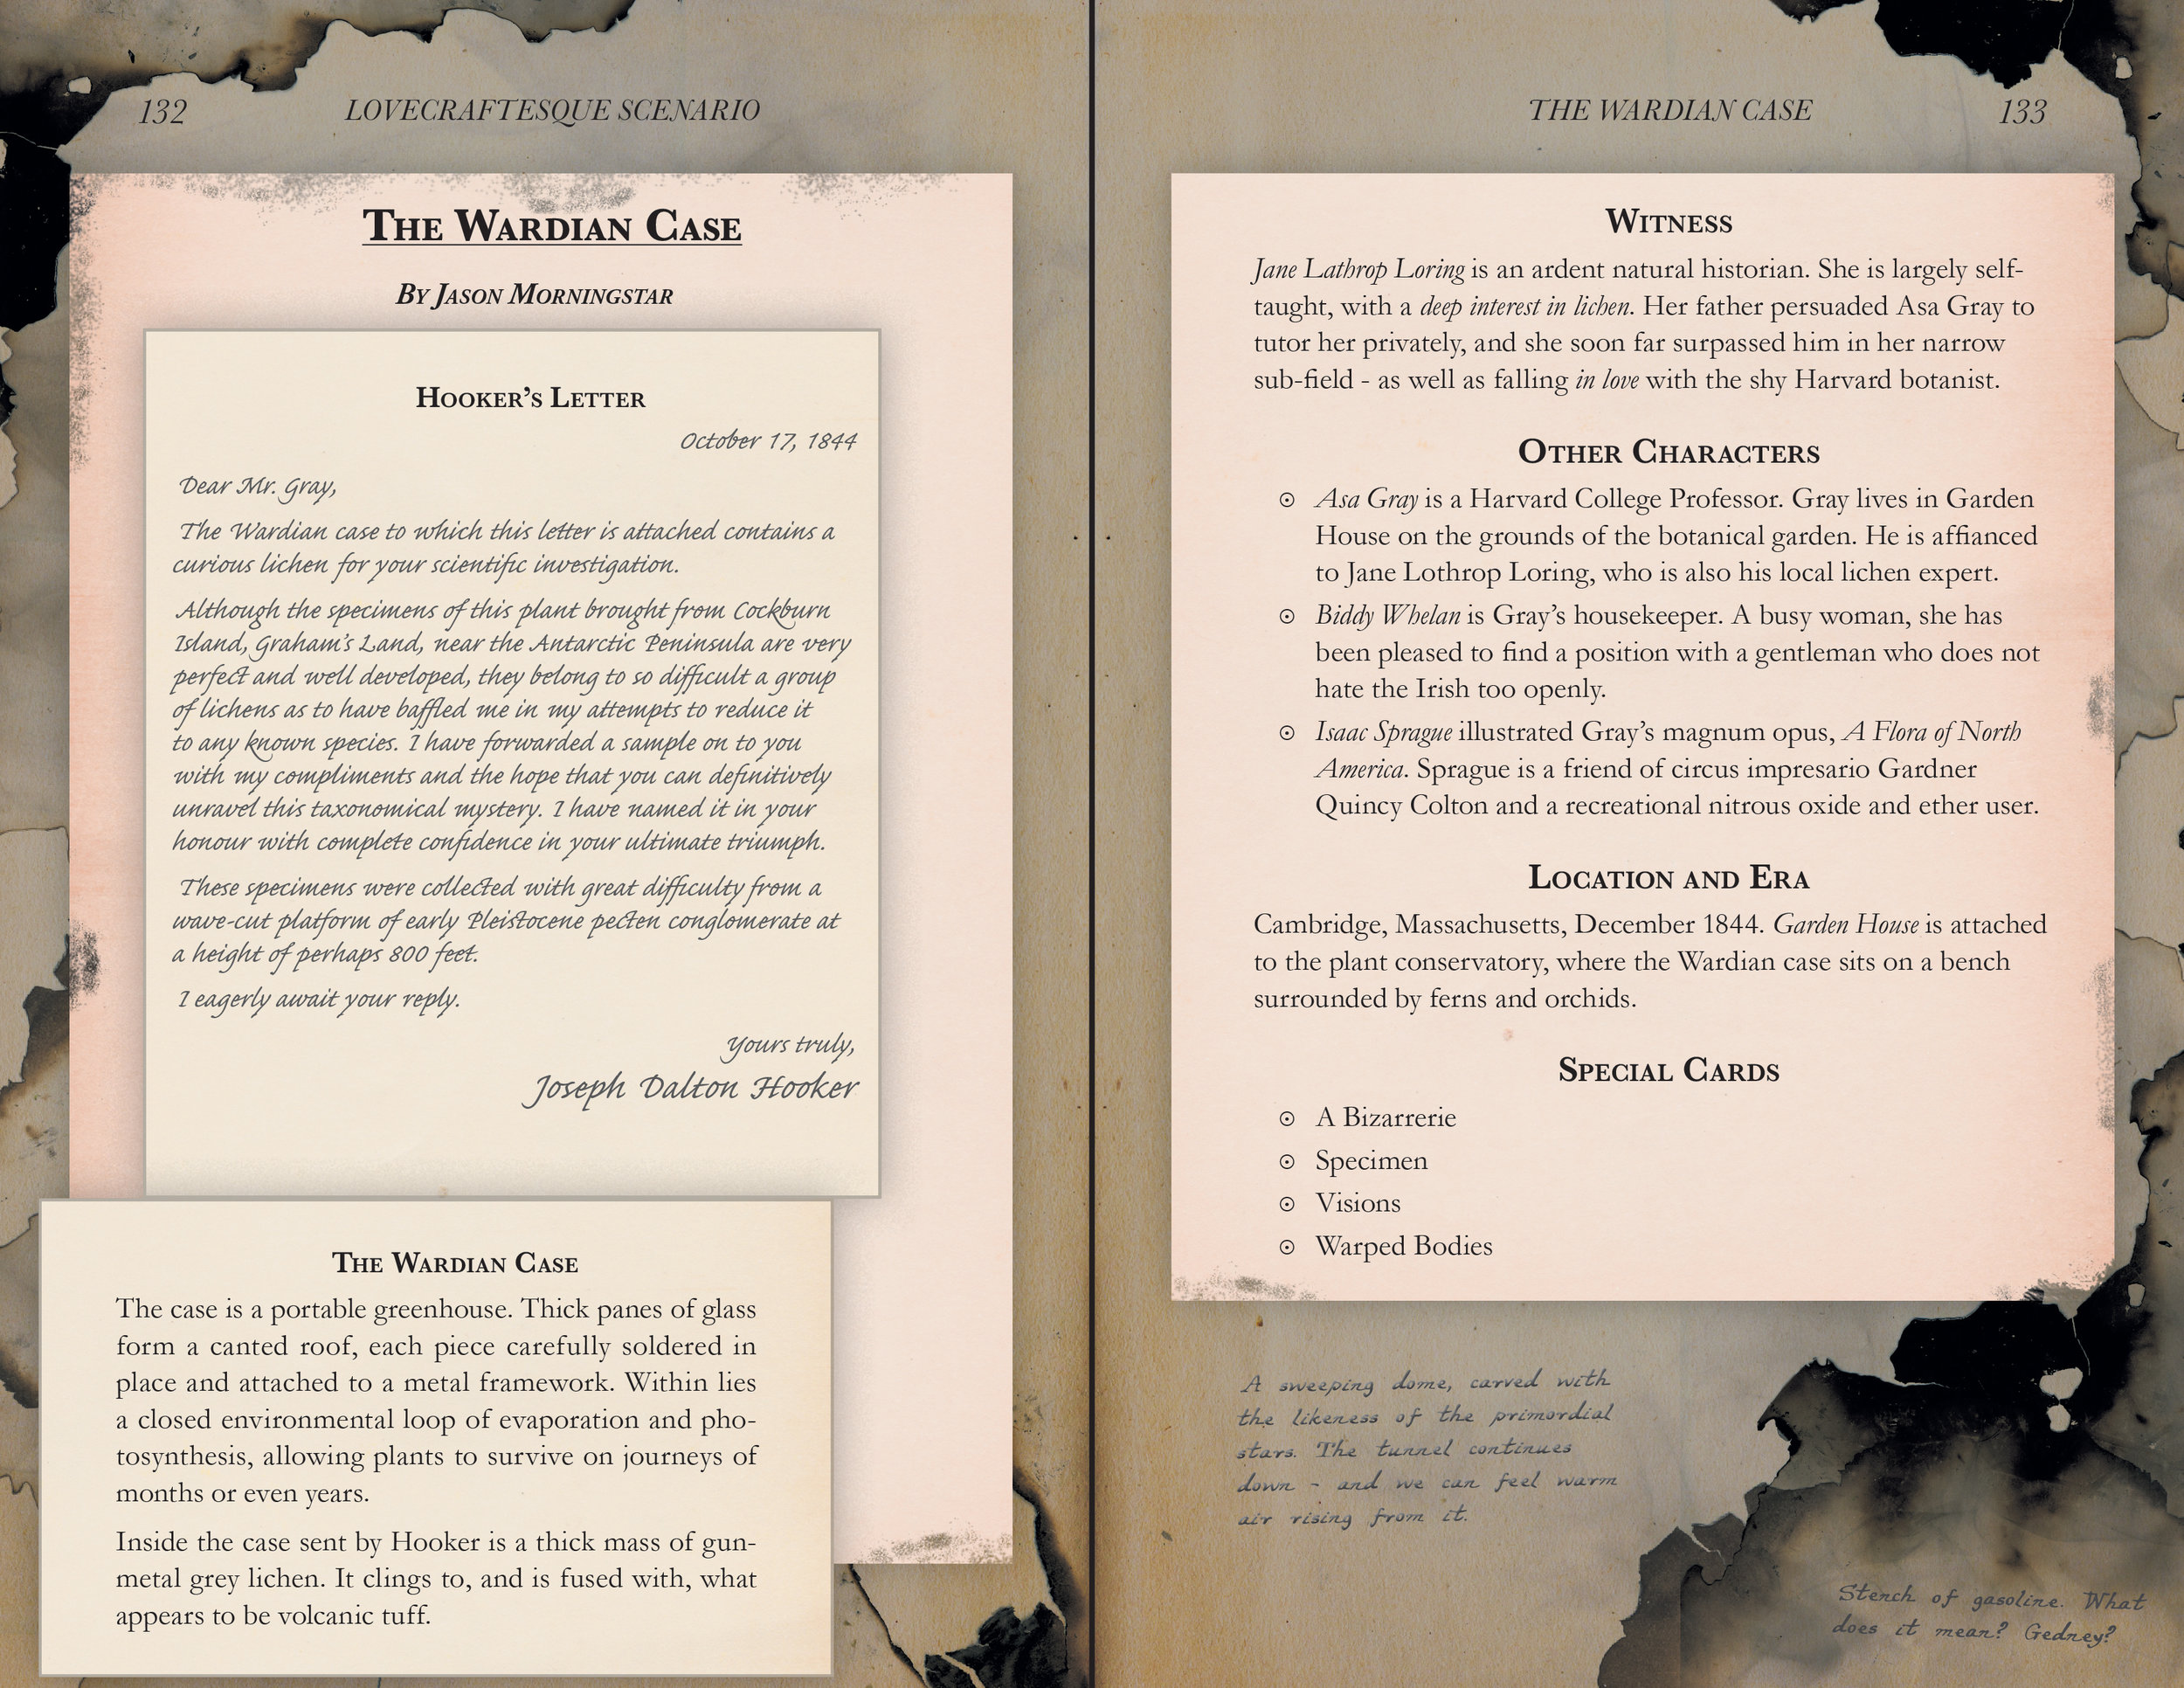 Spread from later in the book, more distressed graphics while preserving readability.